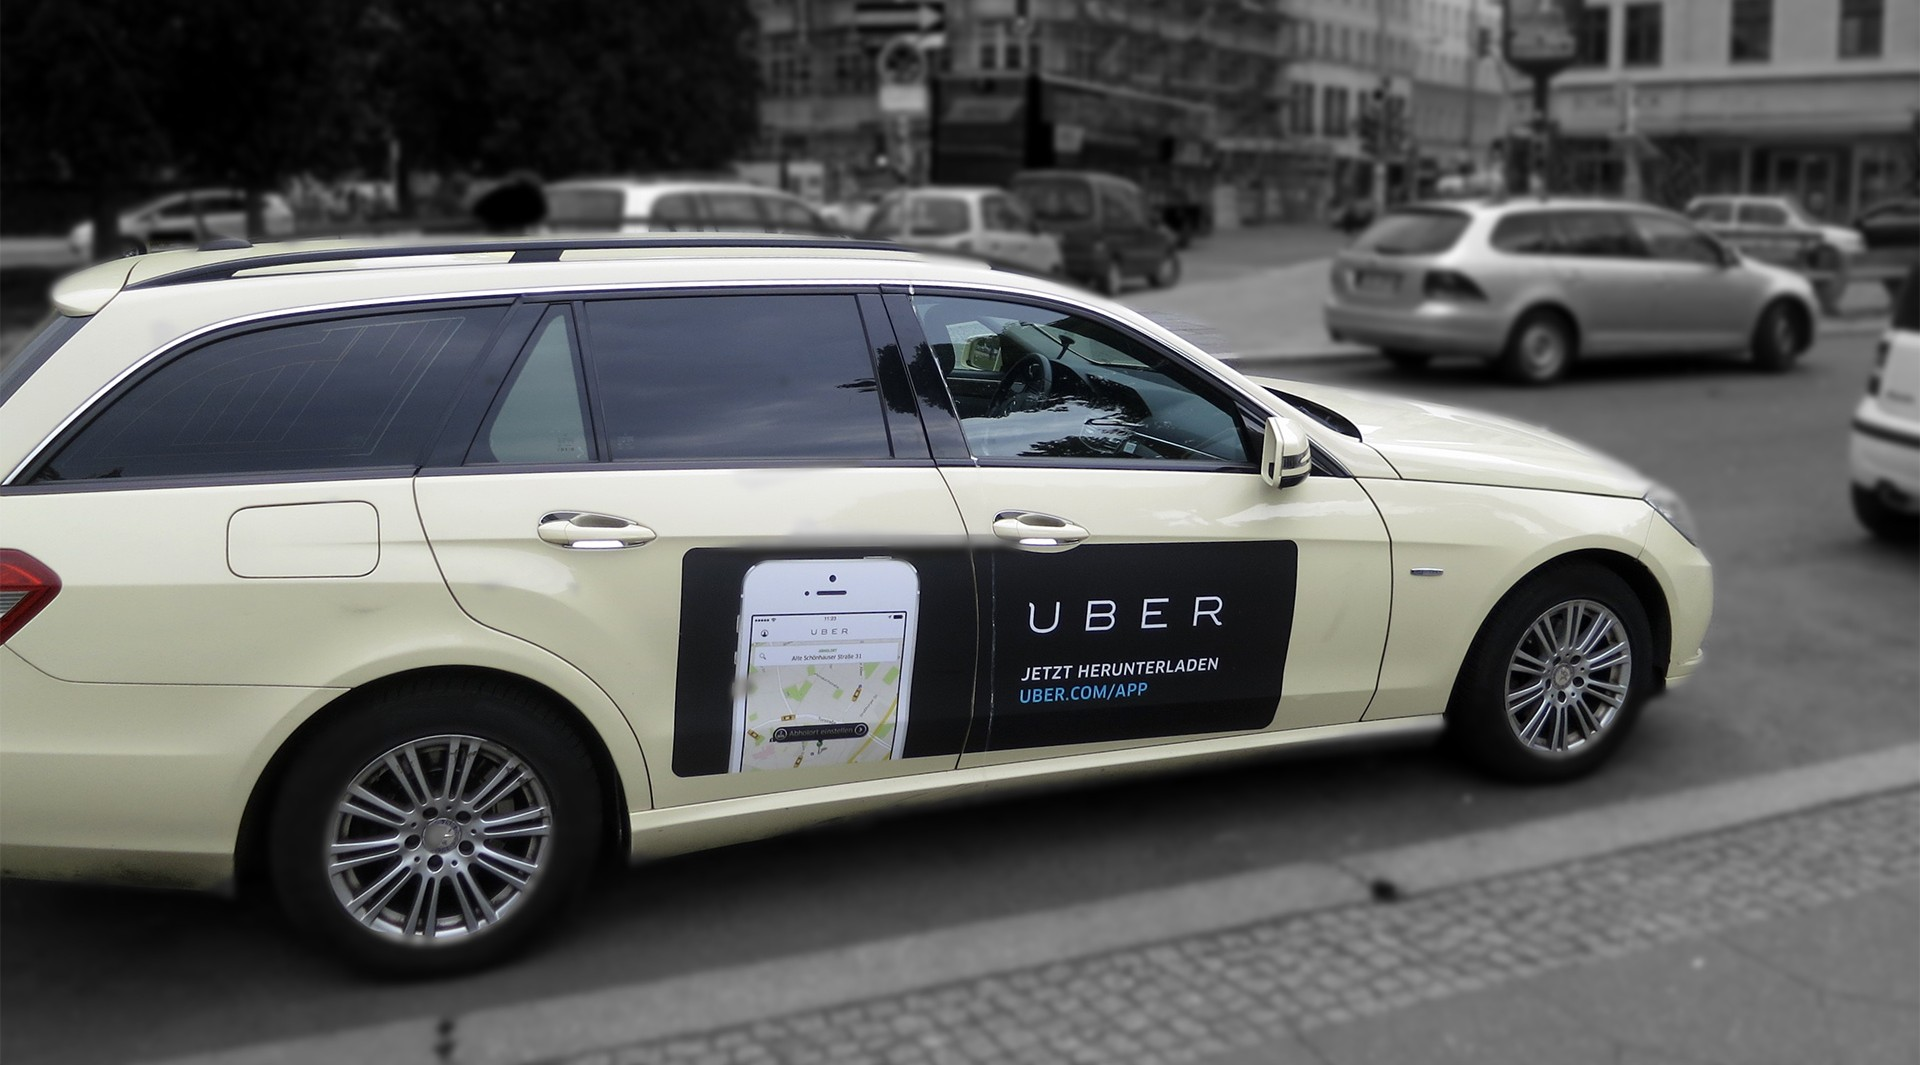 How i Hacked Uber, World's Biggest Taxi Company